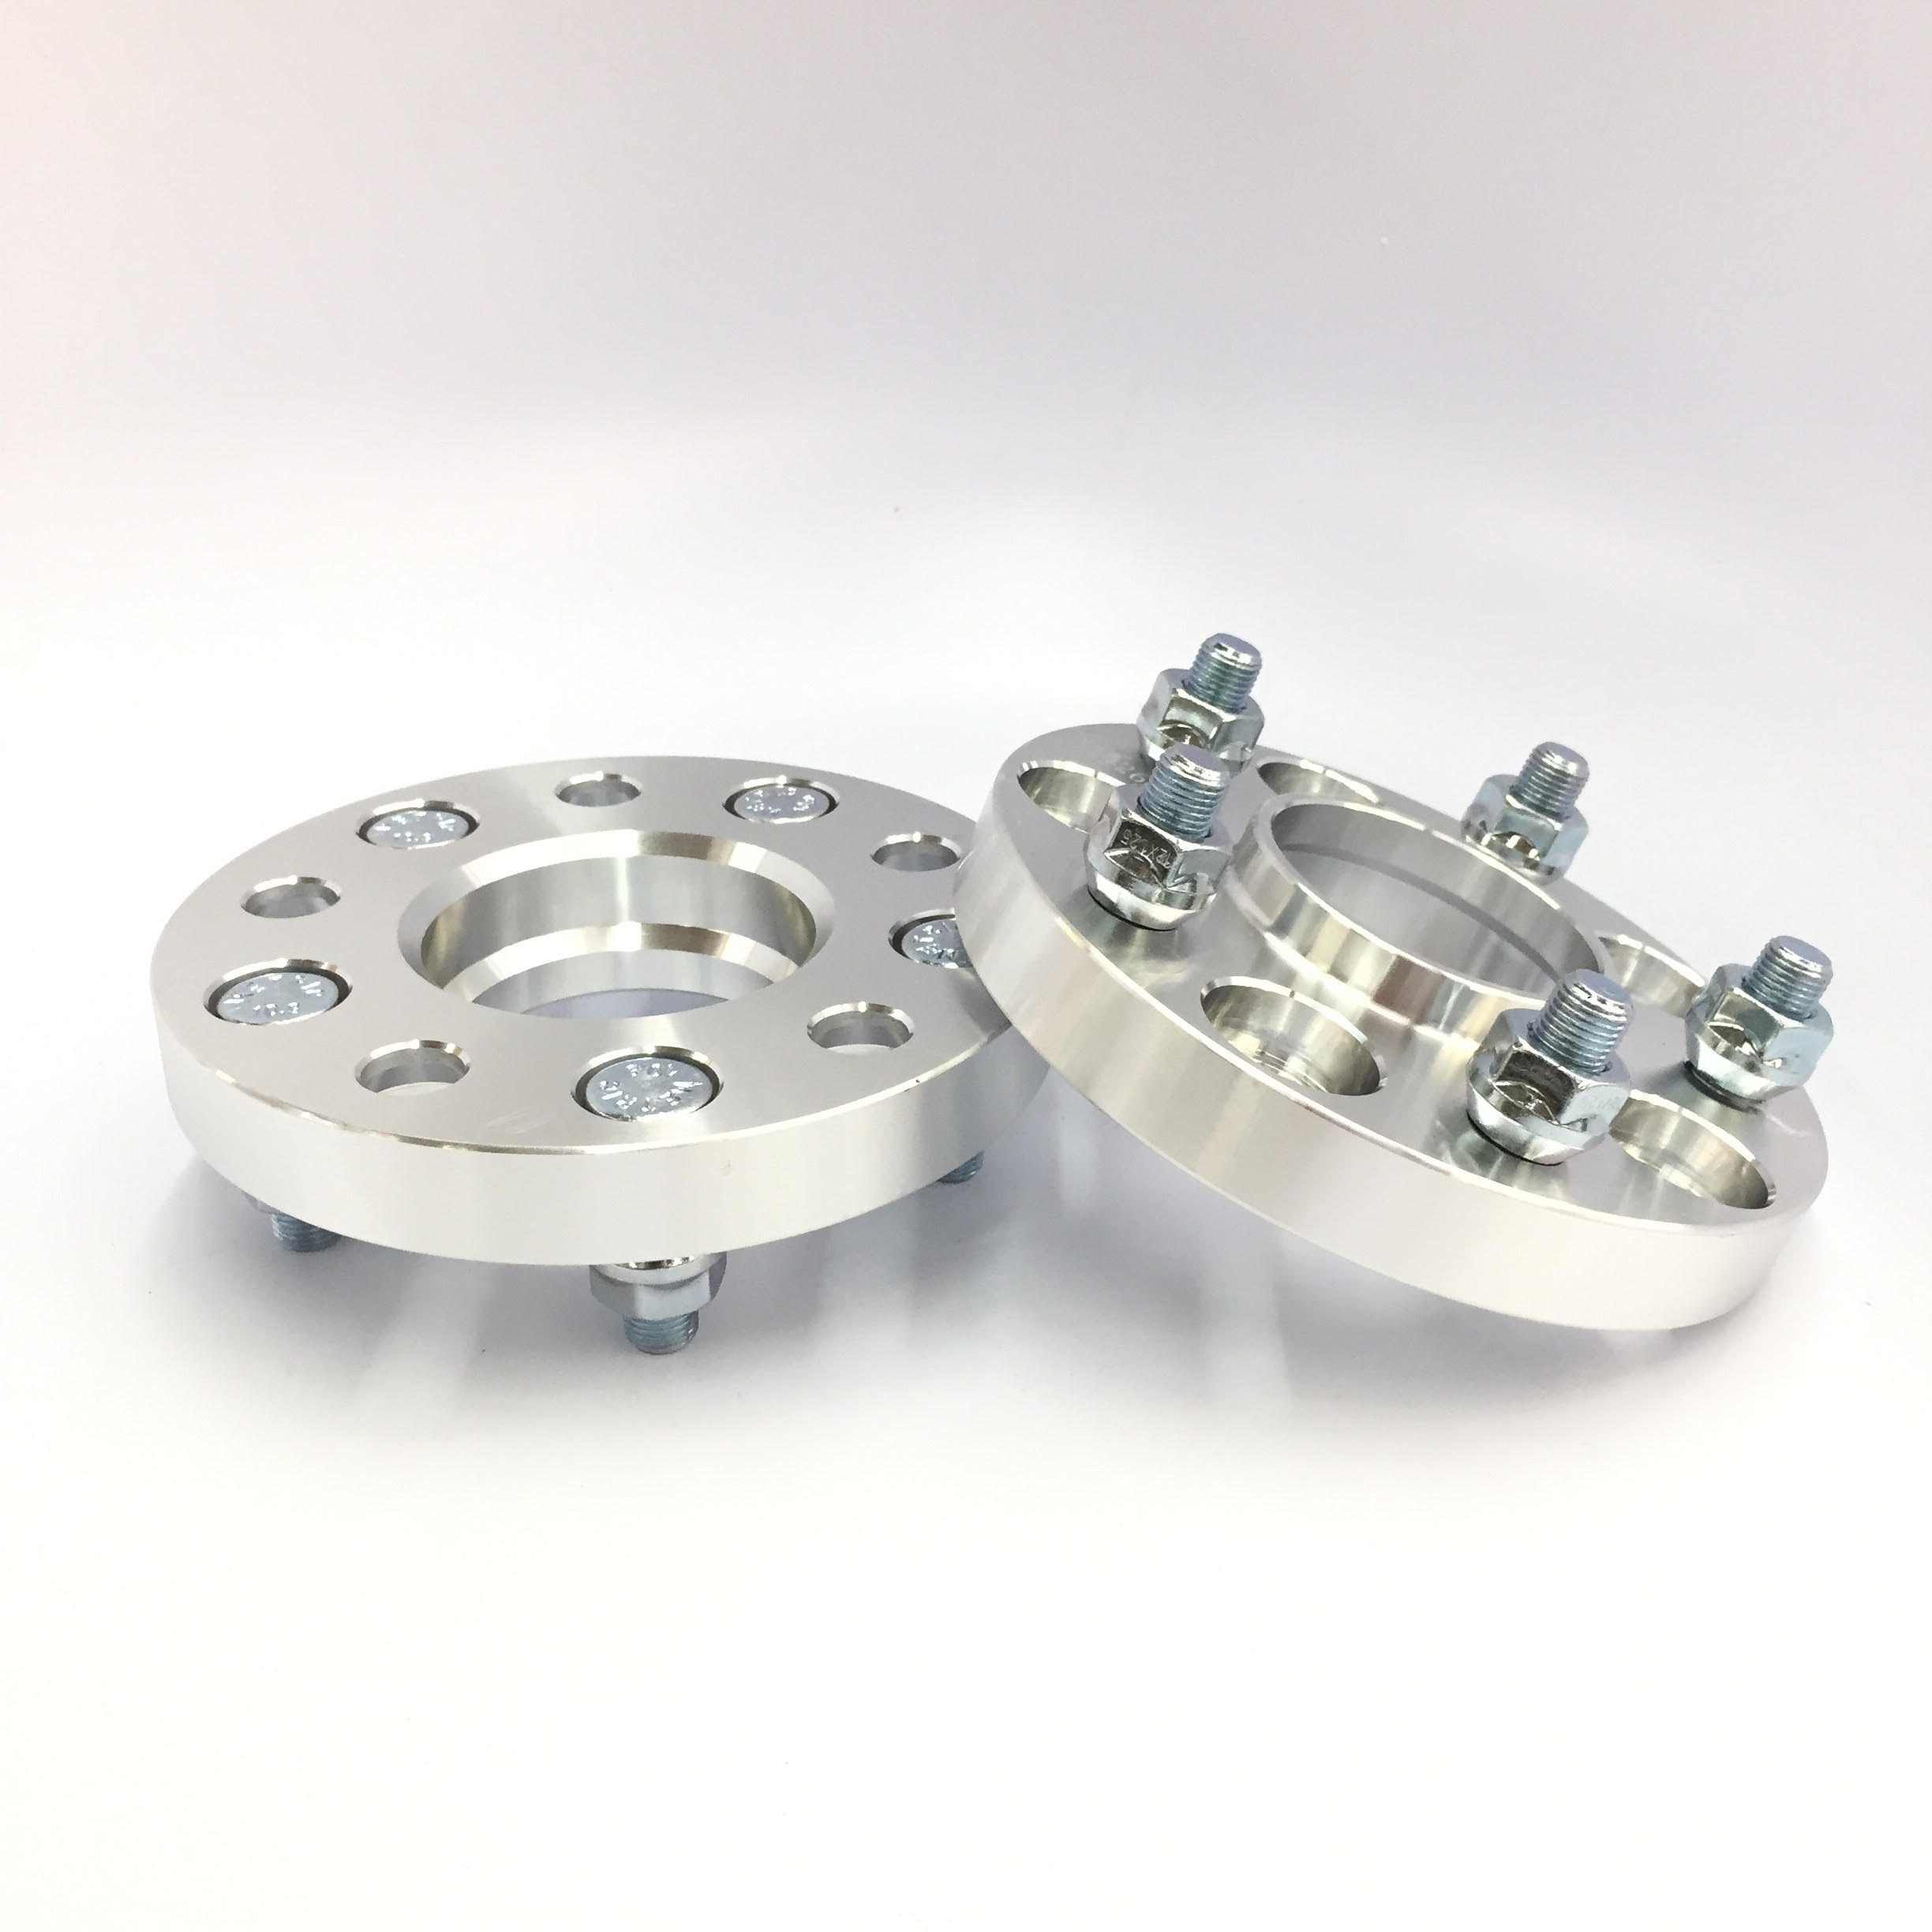 2pc 5X105 TO 5X115 Wheel Adapters | 12X1.5 | 13/16 Inch Thick 20mm Spacers